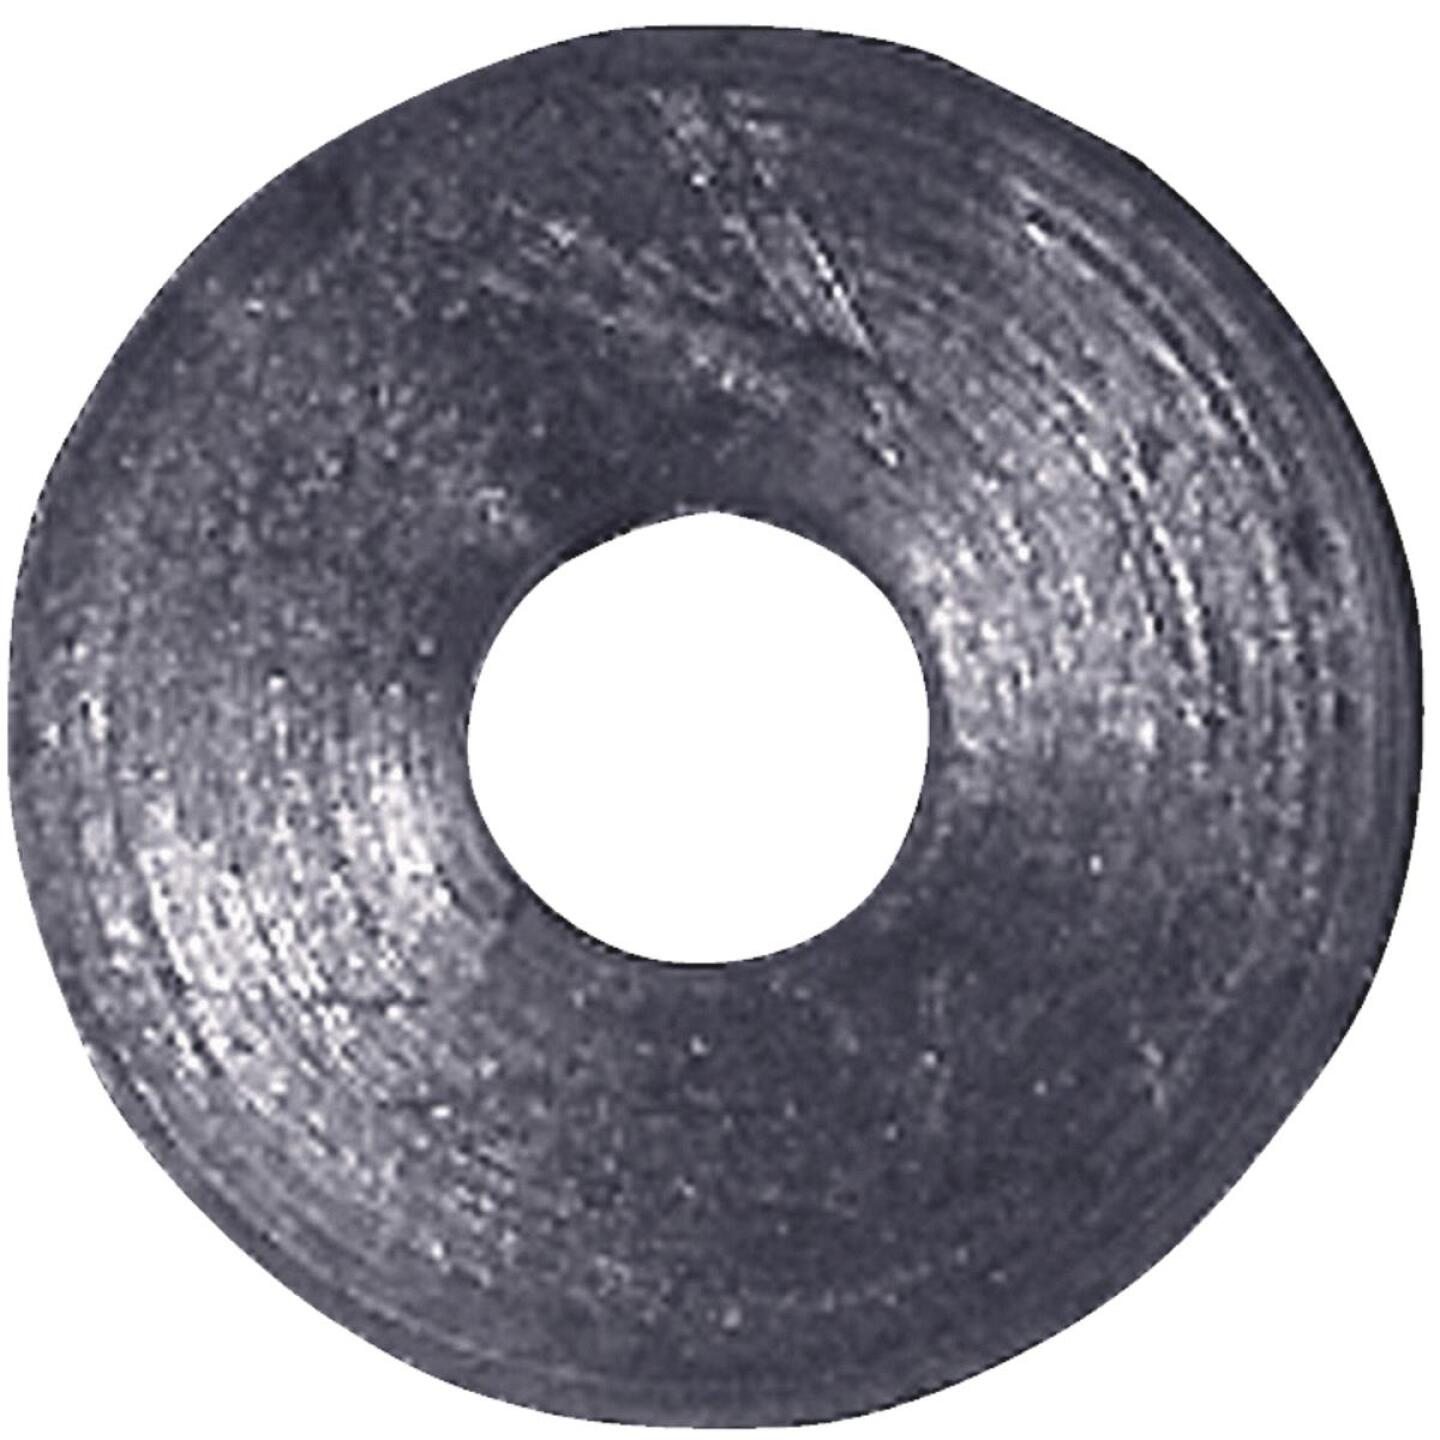 Danco 19/32 In. Black Flat Faucet Washer (200 Ct.) Image 1